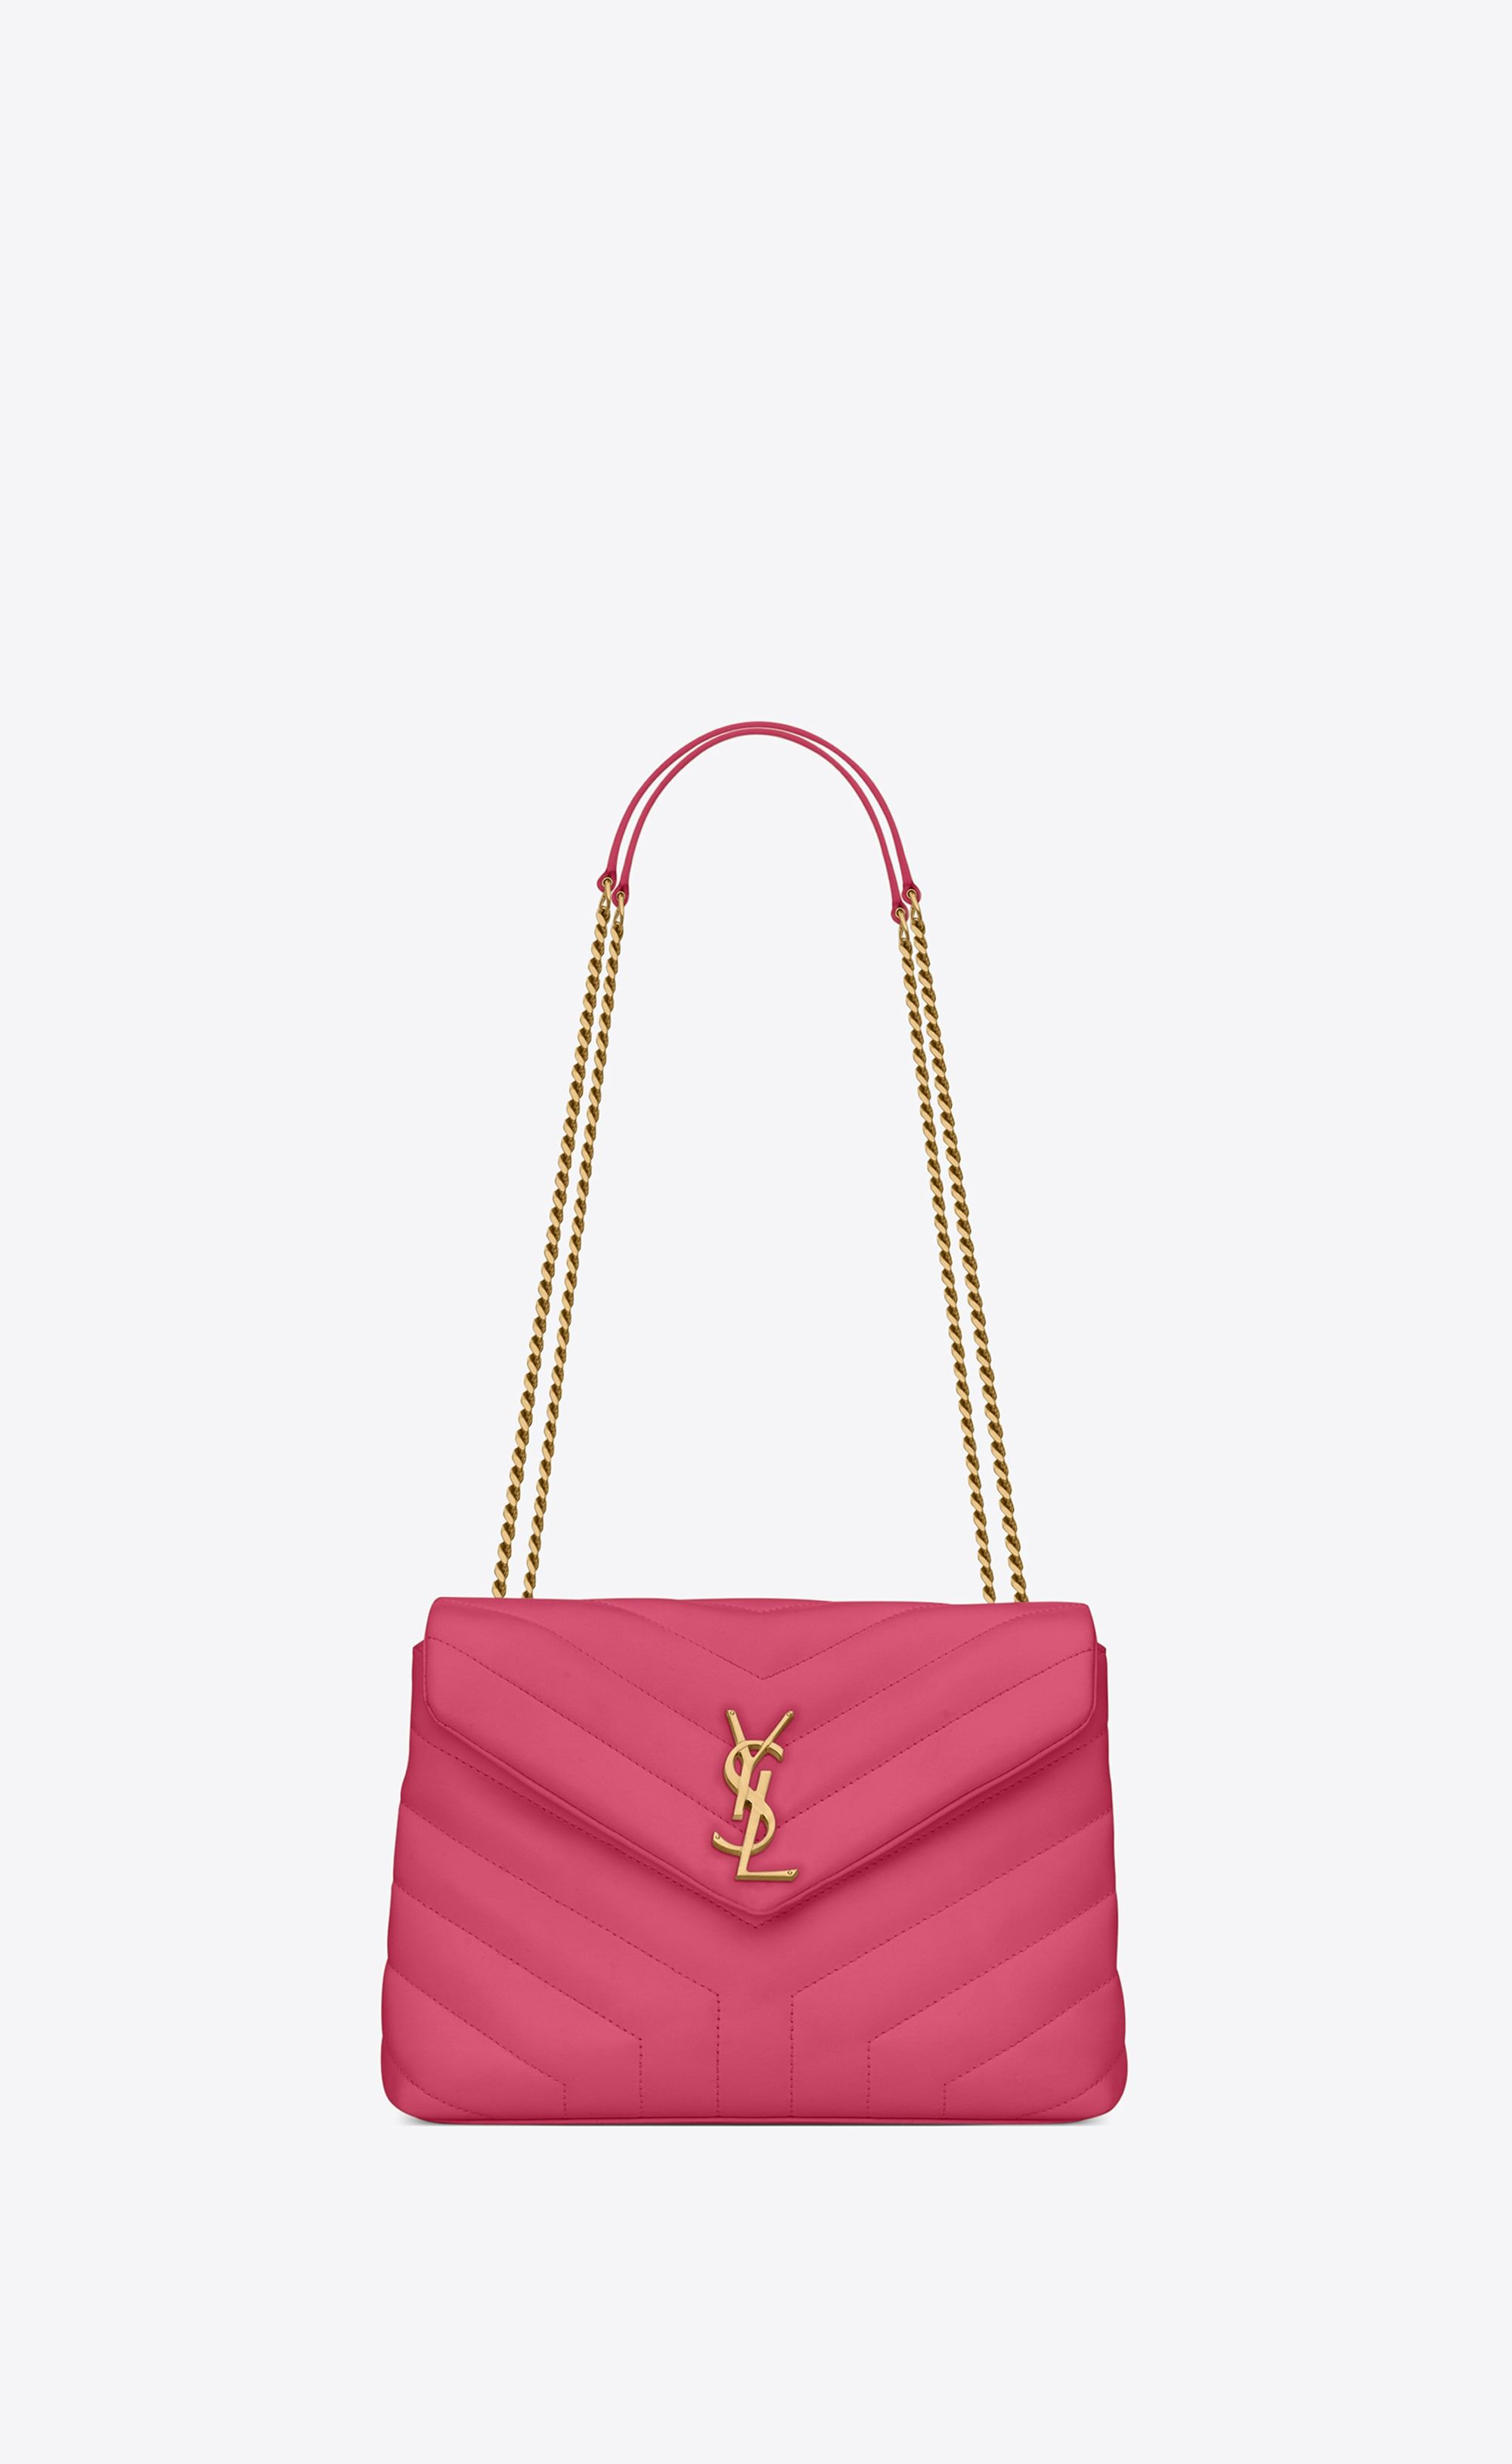 """7a6639a094 loulou small in matelassé """"Y"""" leather in 2019 